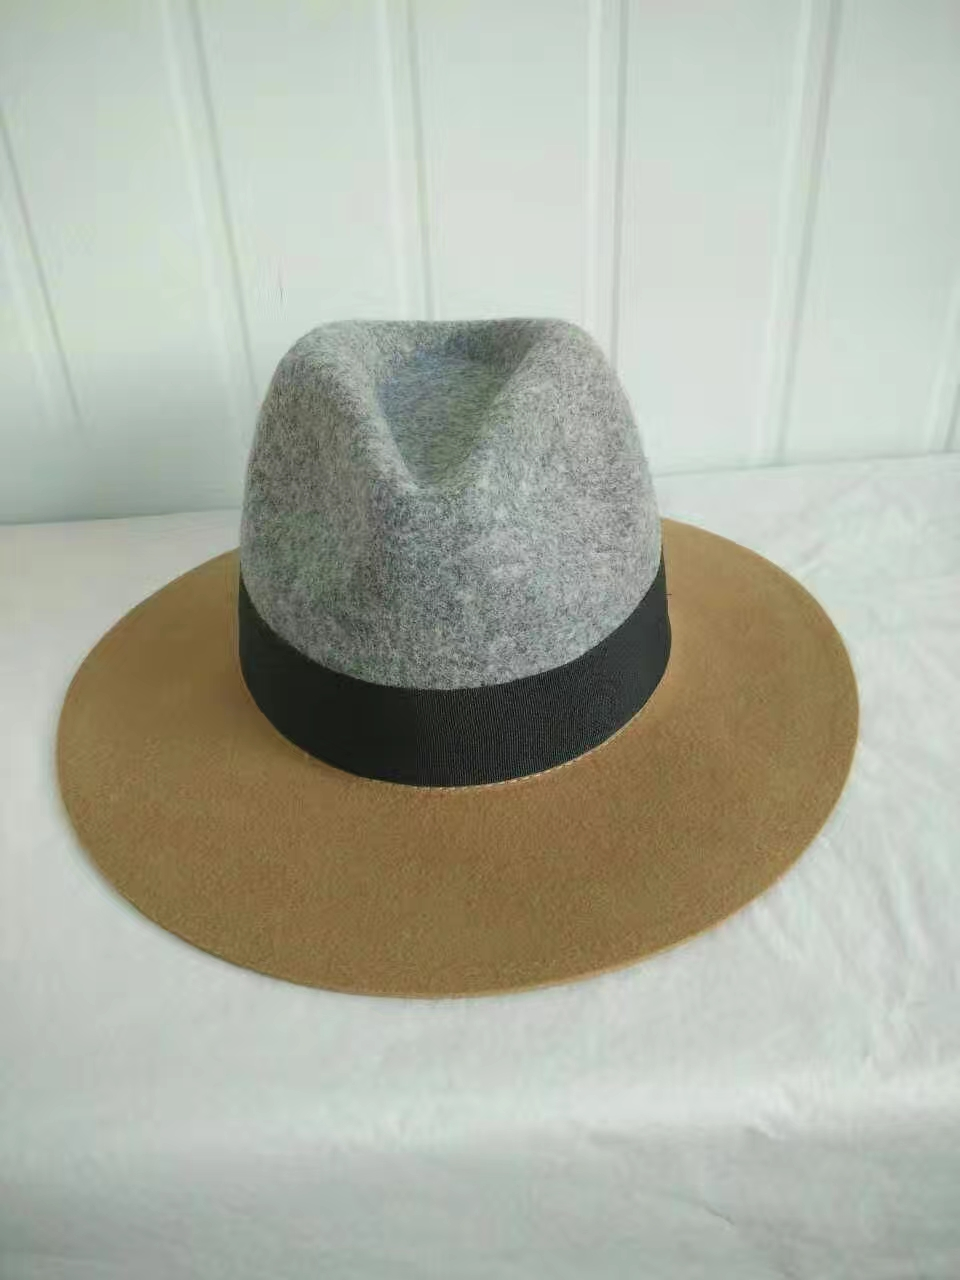 single design women and man felt hat